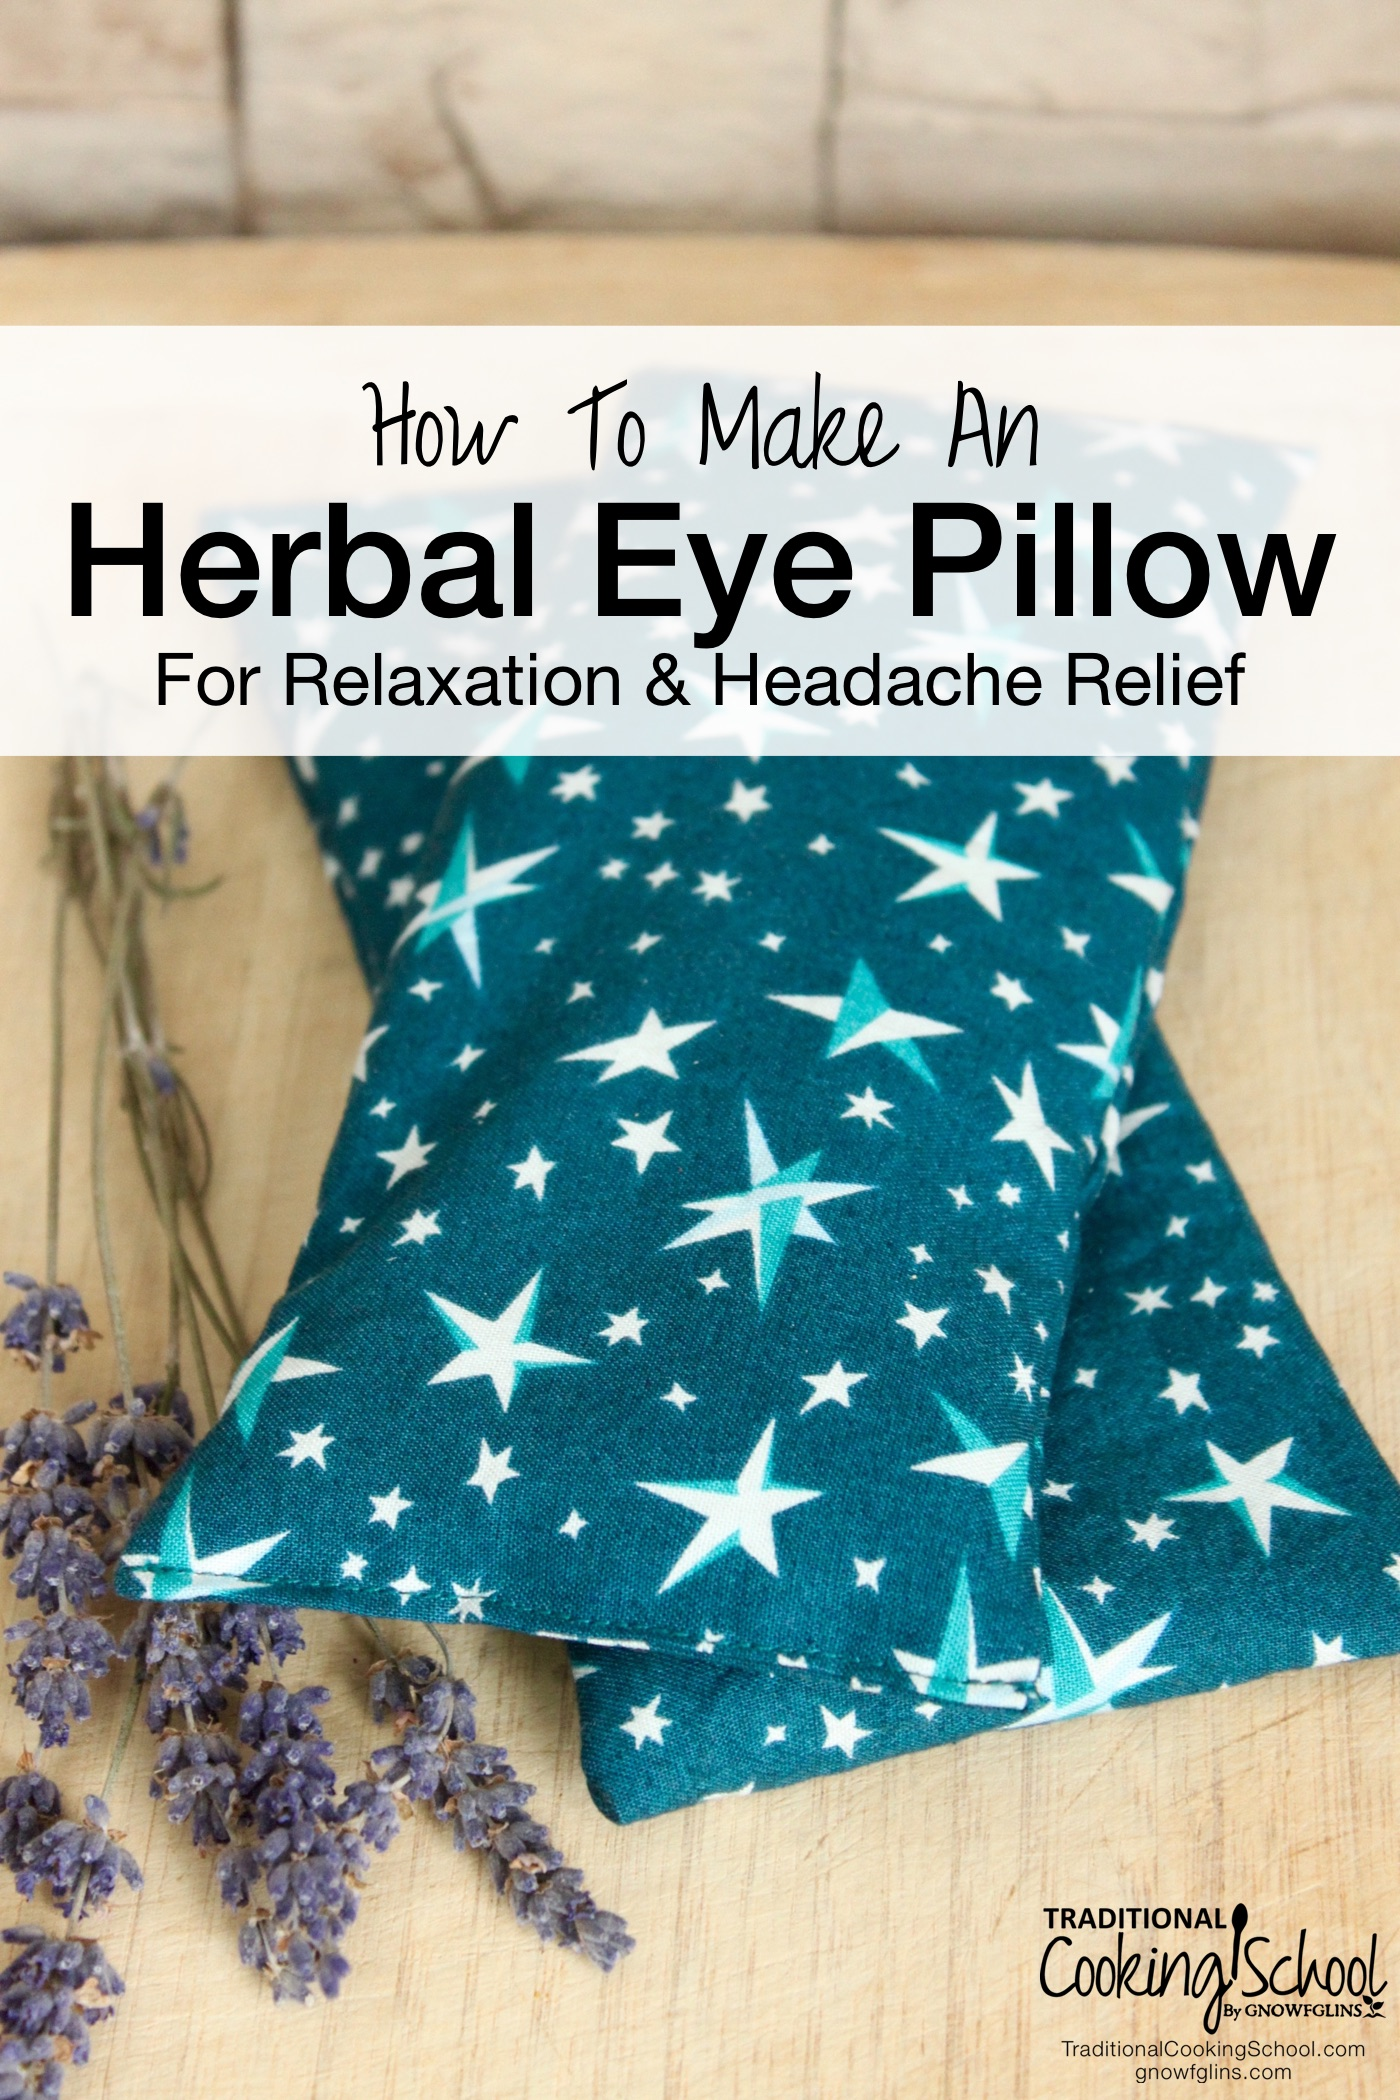 Herbal Eye Pillow For Relaxation and Headache Relief